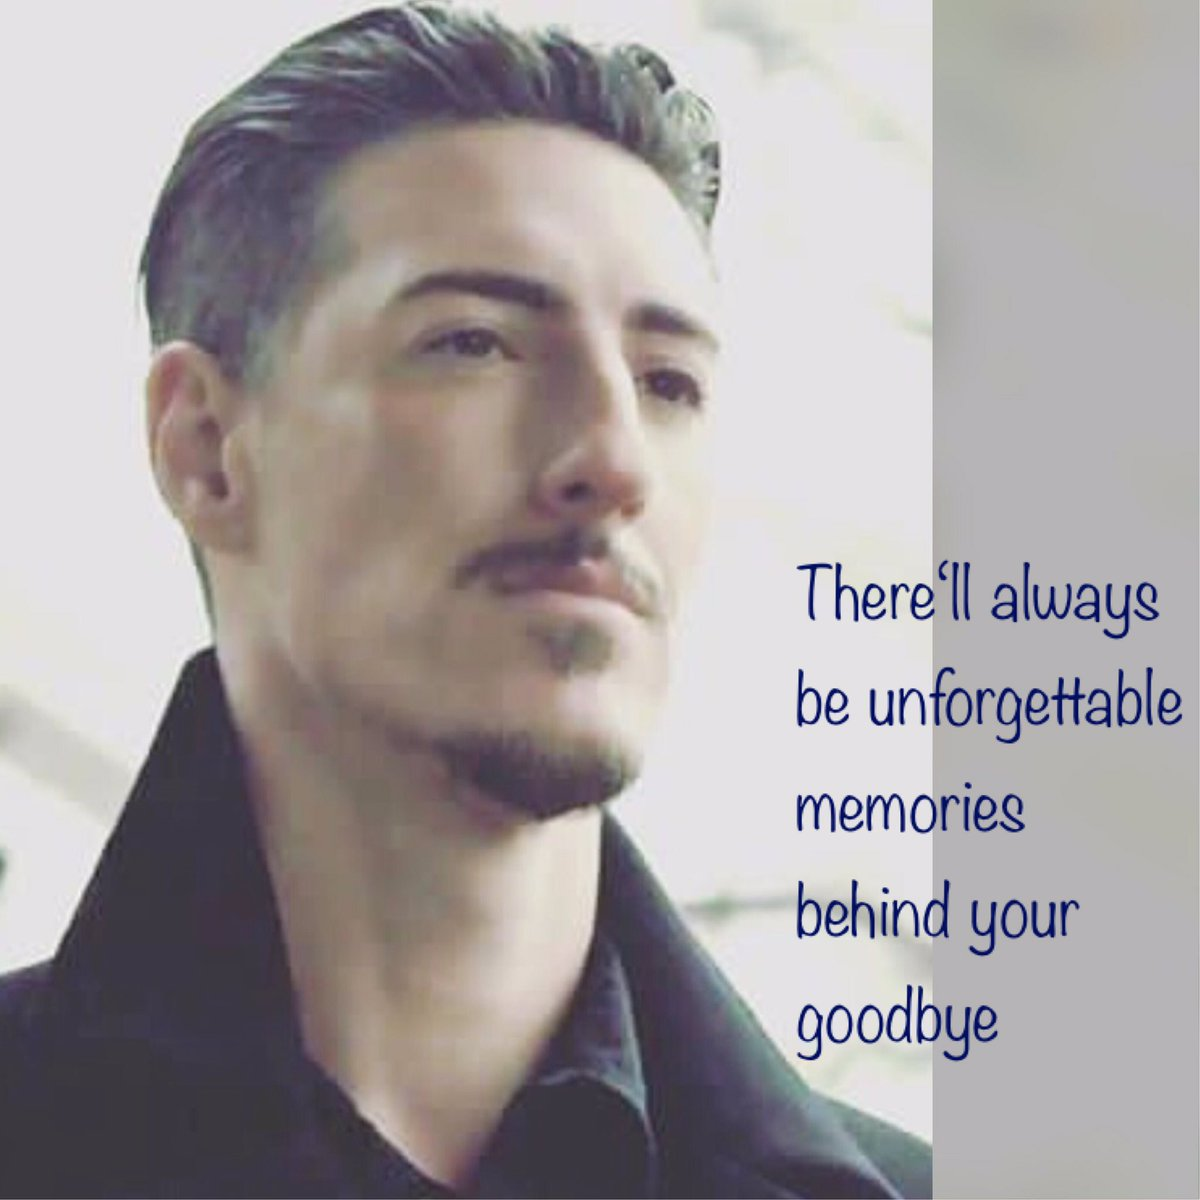 """There'll always be unforgettable memories behind your goodbye. #FlashbackFriday w/ @ERICBALFOUR as our #DukeCrocker 💎. One of Duke's last scenes in #Haven5 x 26 """"Forever"""". Original pic shared by Eric Balfour today a year ago. https://www.instagram.com/p/BeE6TnTlUCb/?utm_source=ig_share_sheet&igshid=1oo05expf8fiu…"""